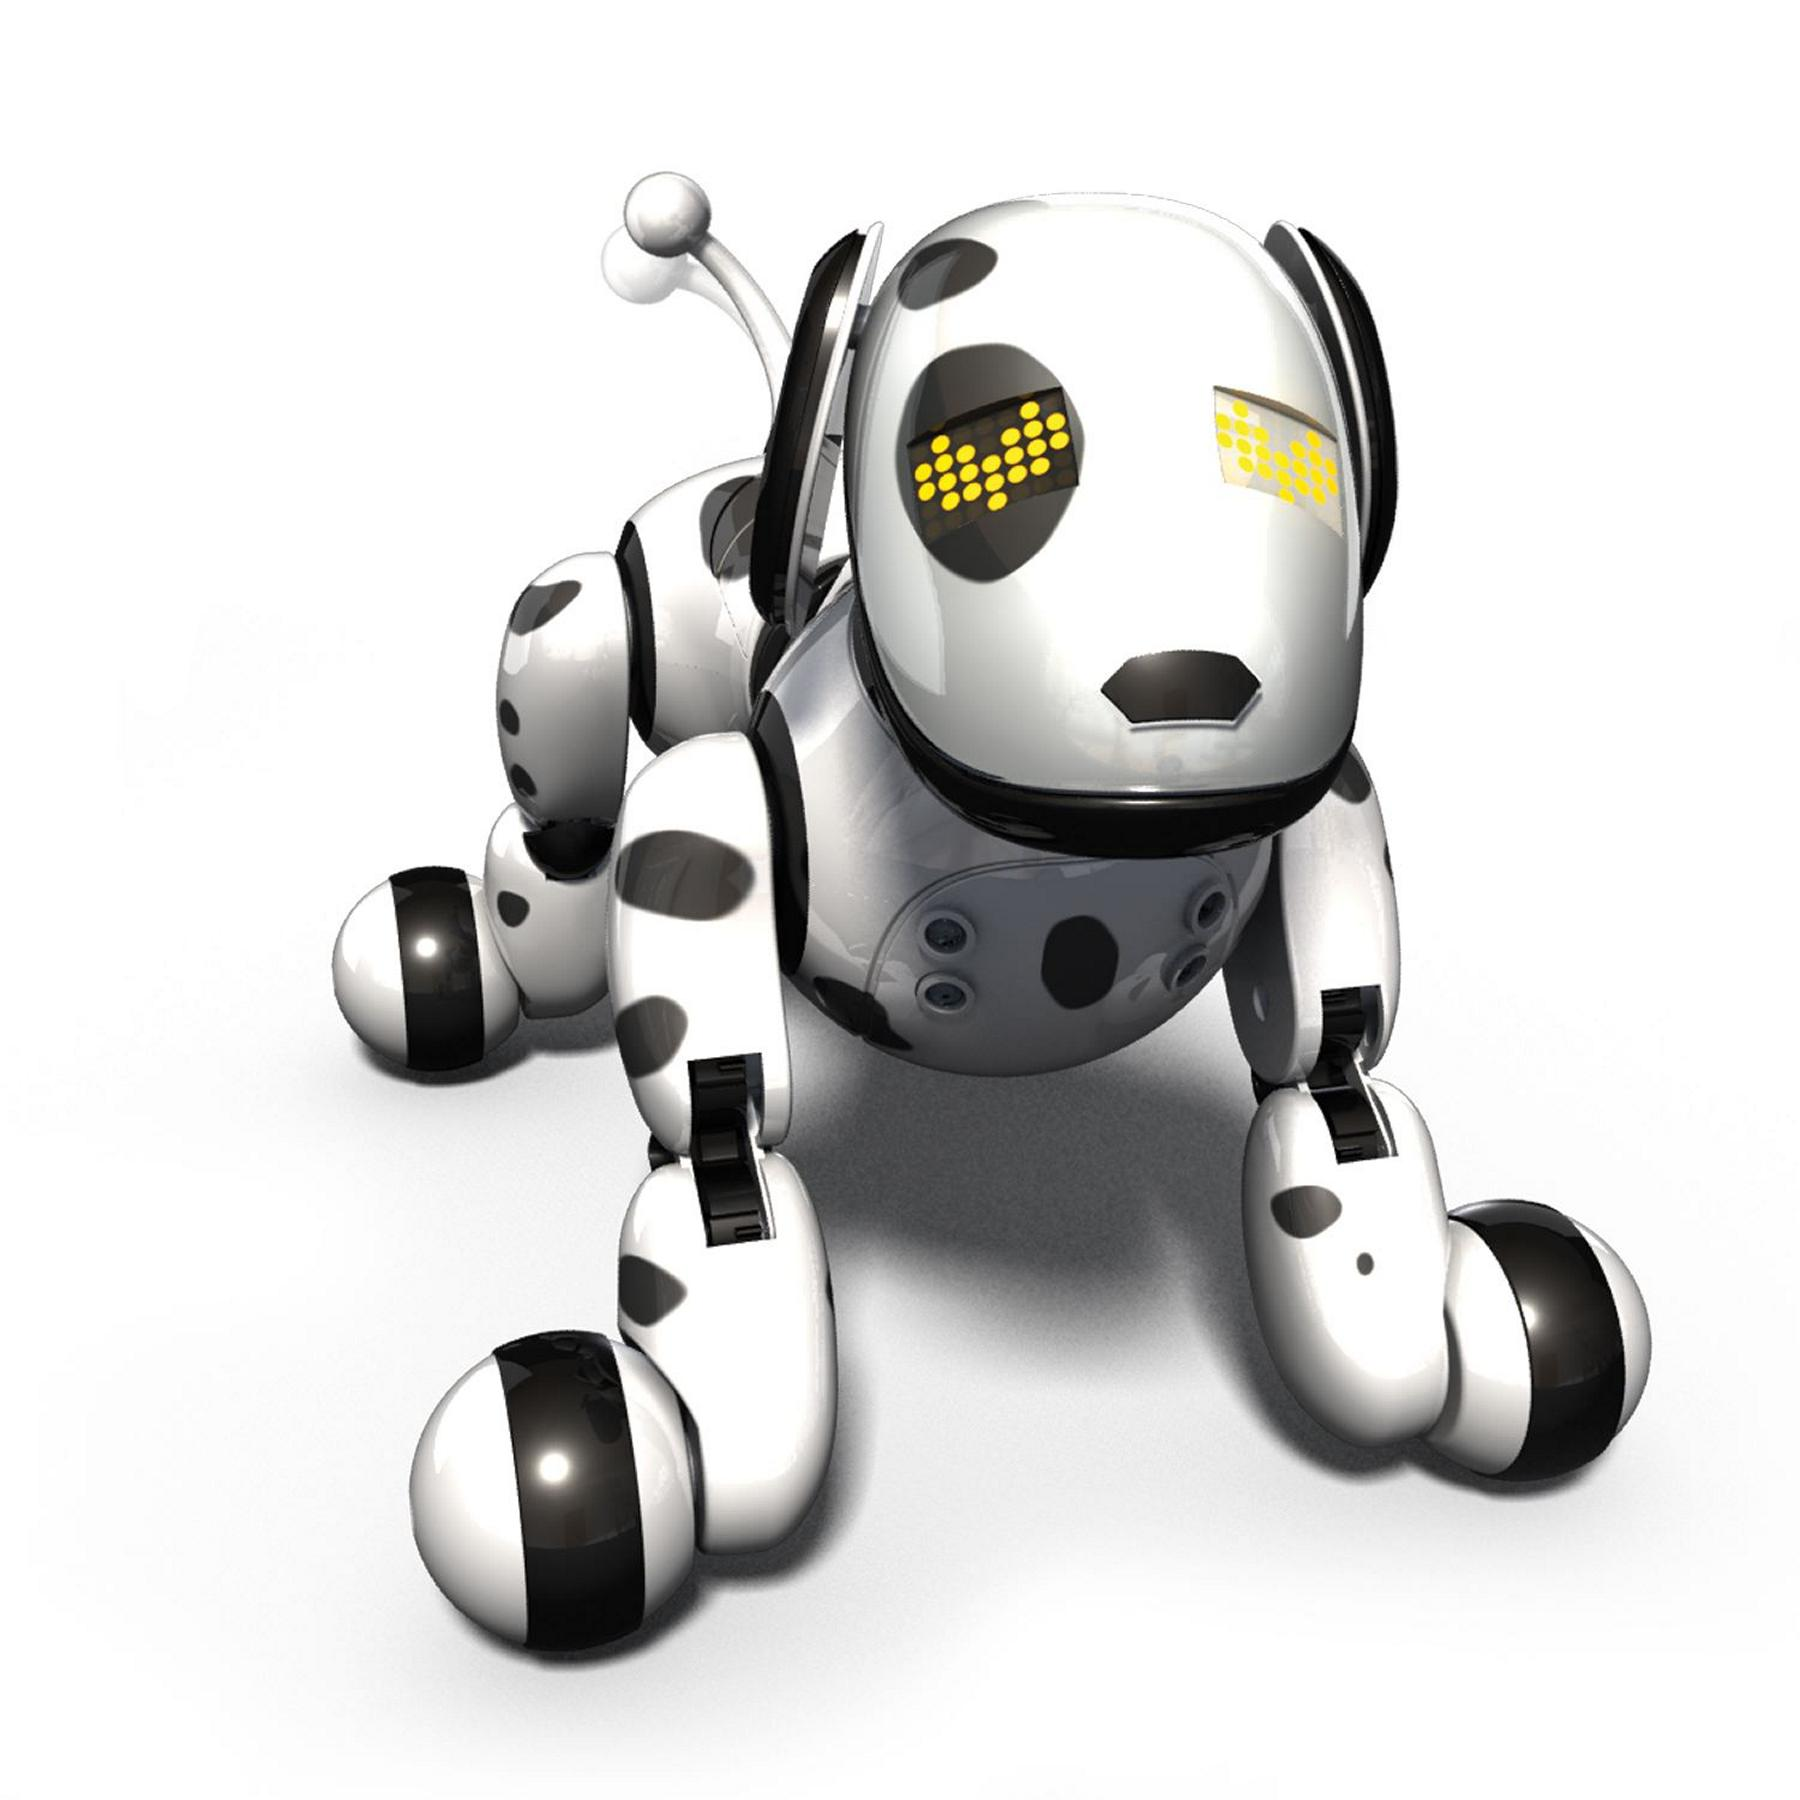 New ZOOMER Dalmatian Robot Electronic Dog, Zoomie Toy